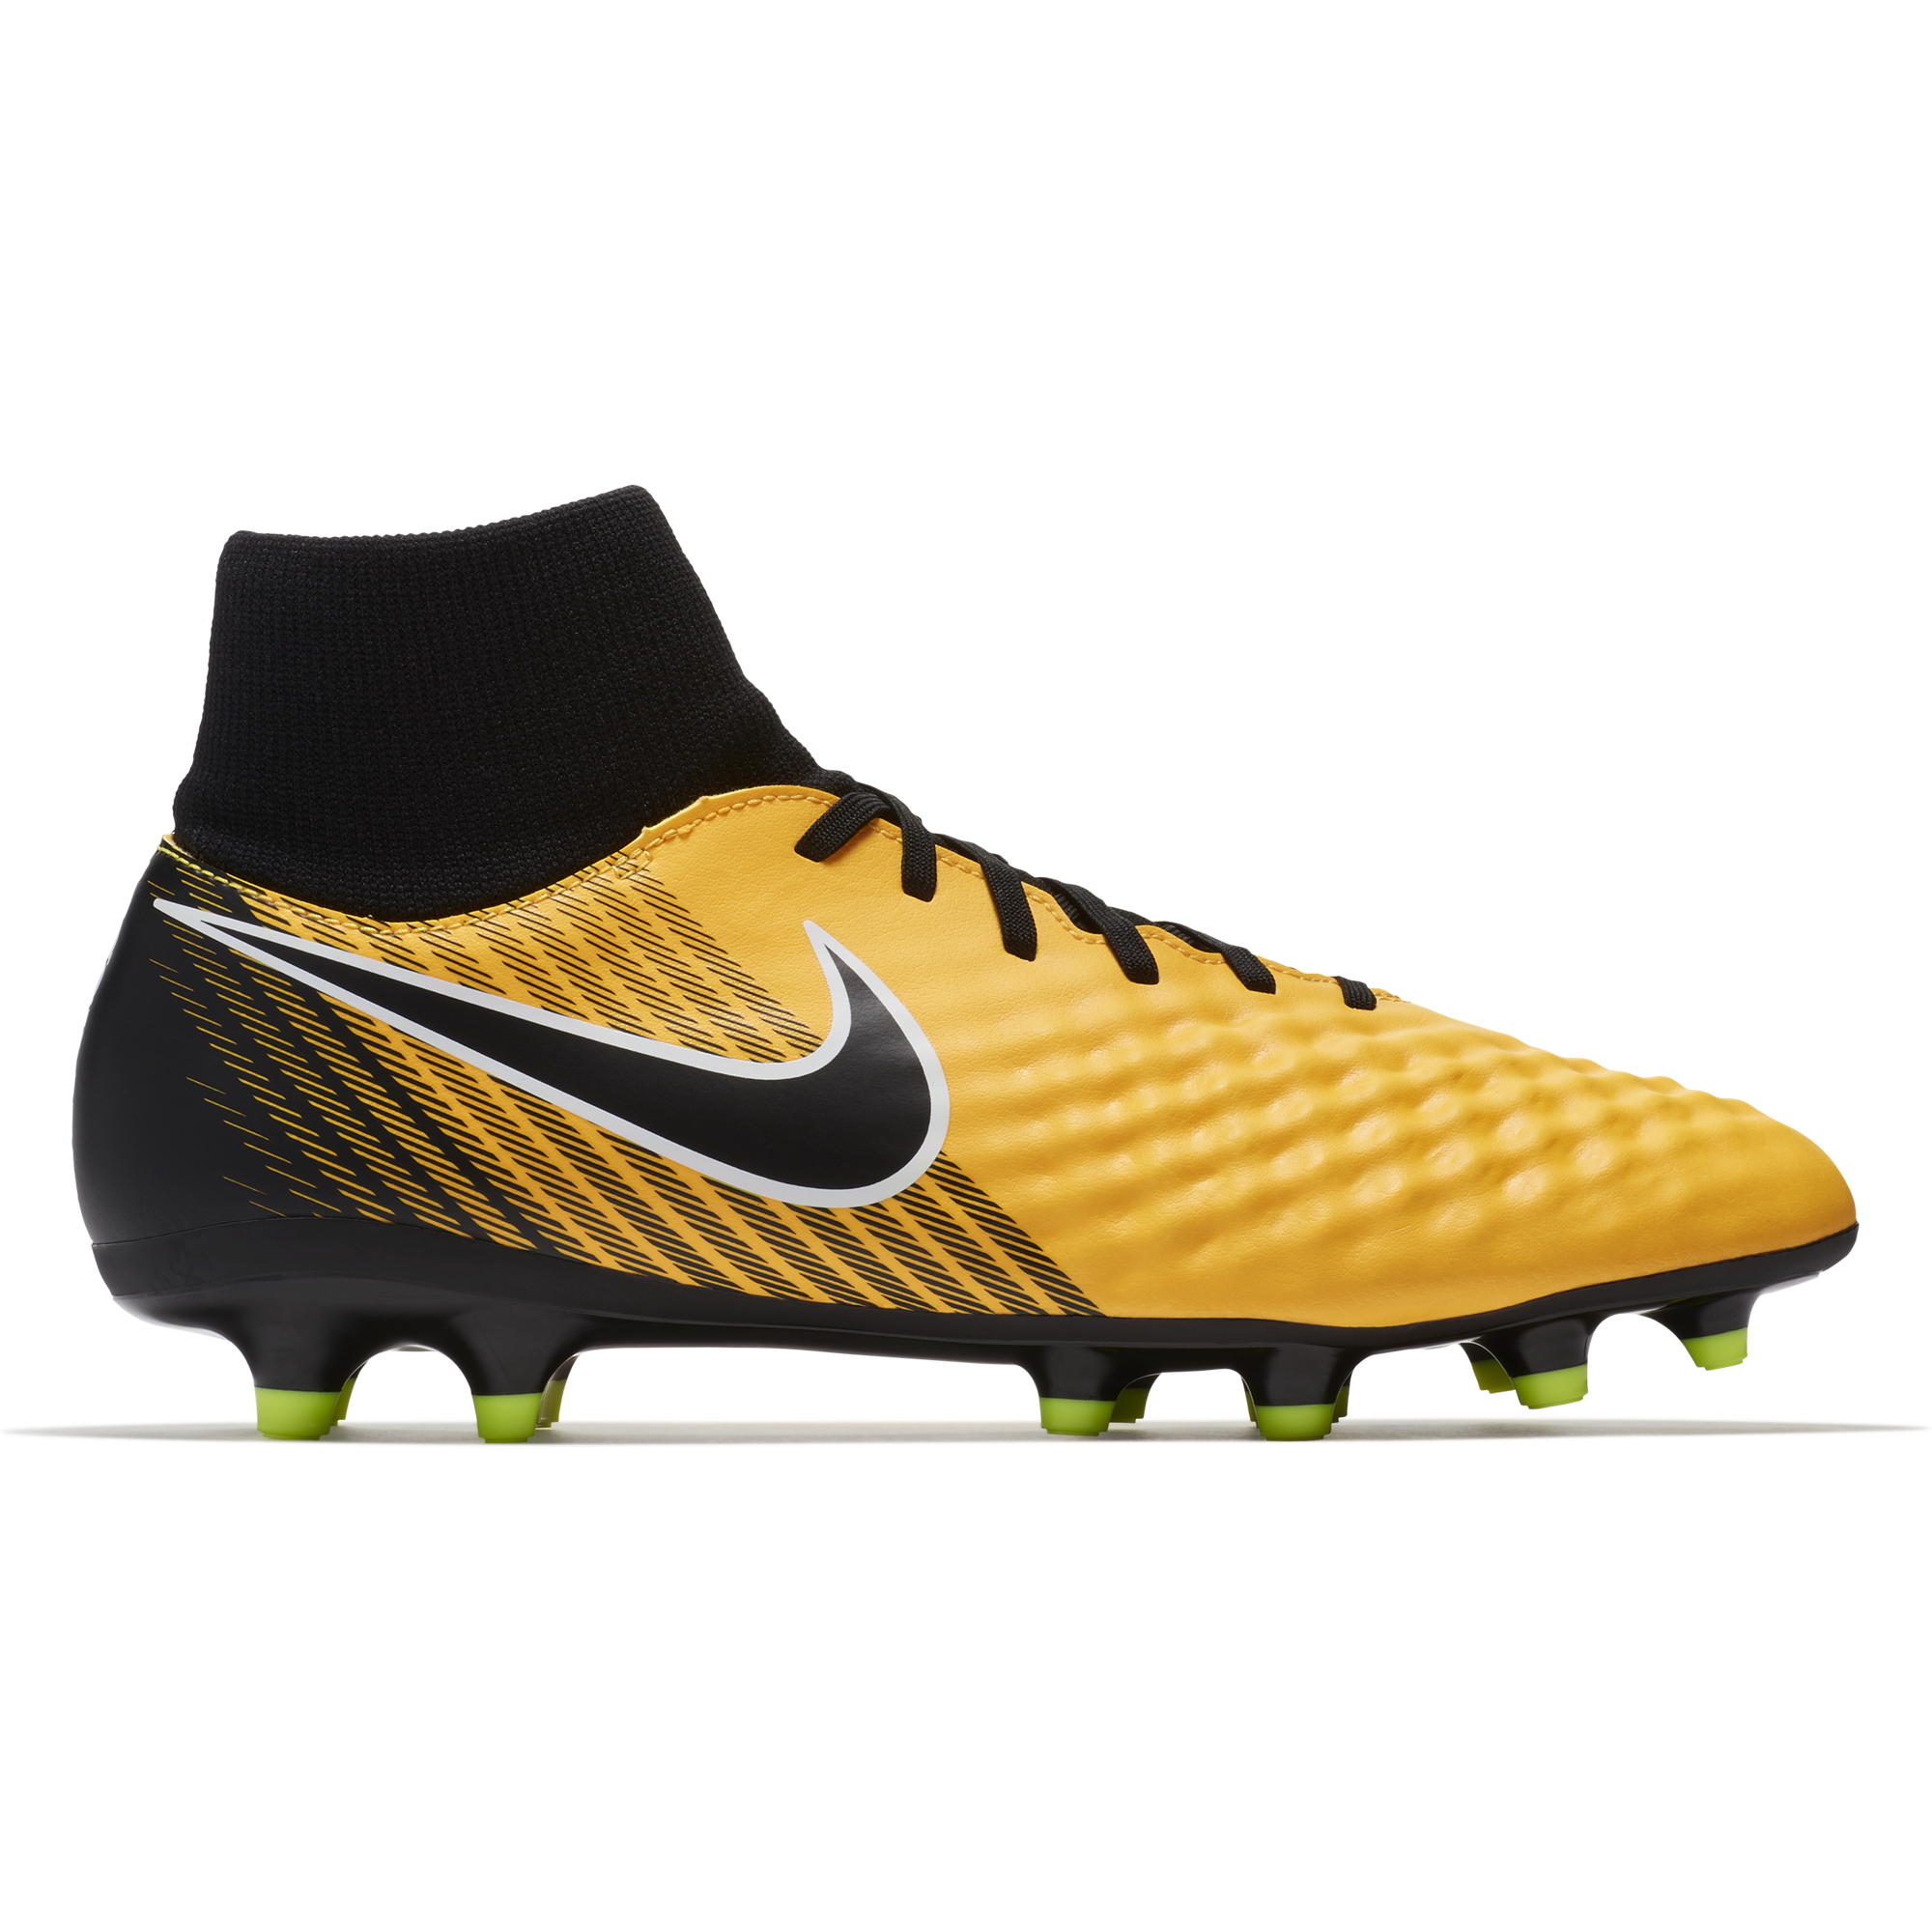 Men's Nike Magista Onda II Dynamic Fit FG